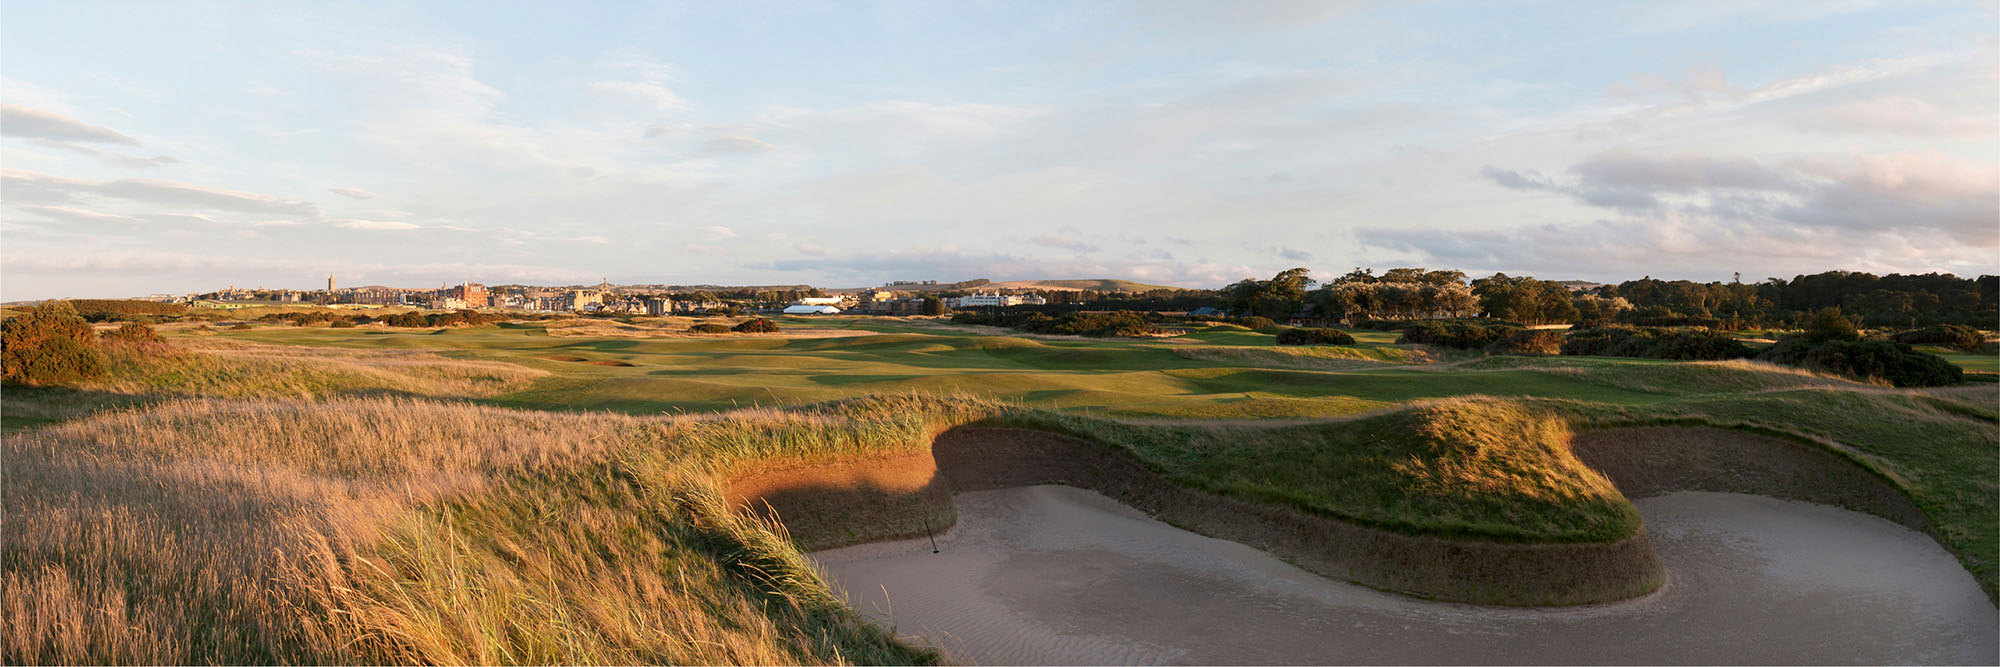 Golf Course Image - St Andrews No. 14, Hell Bunker(2013)